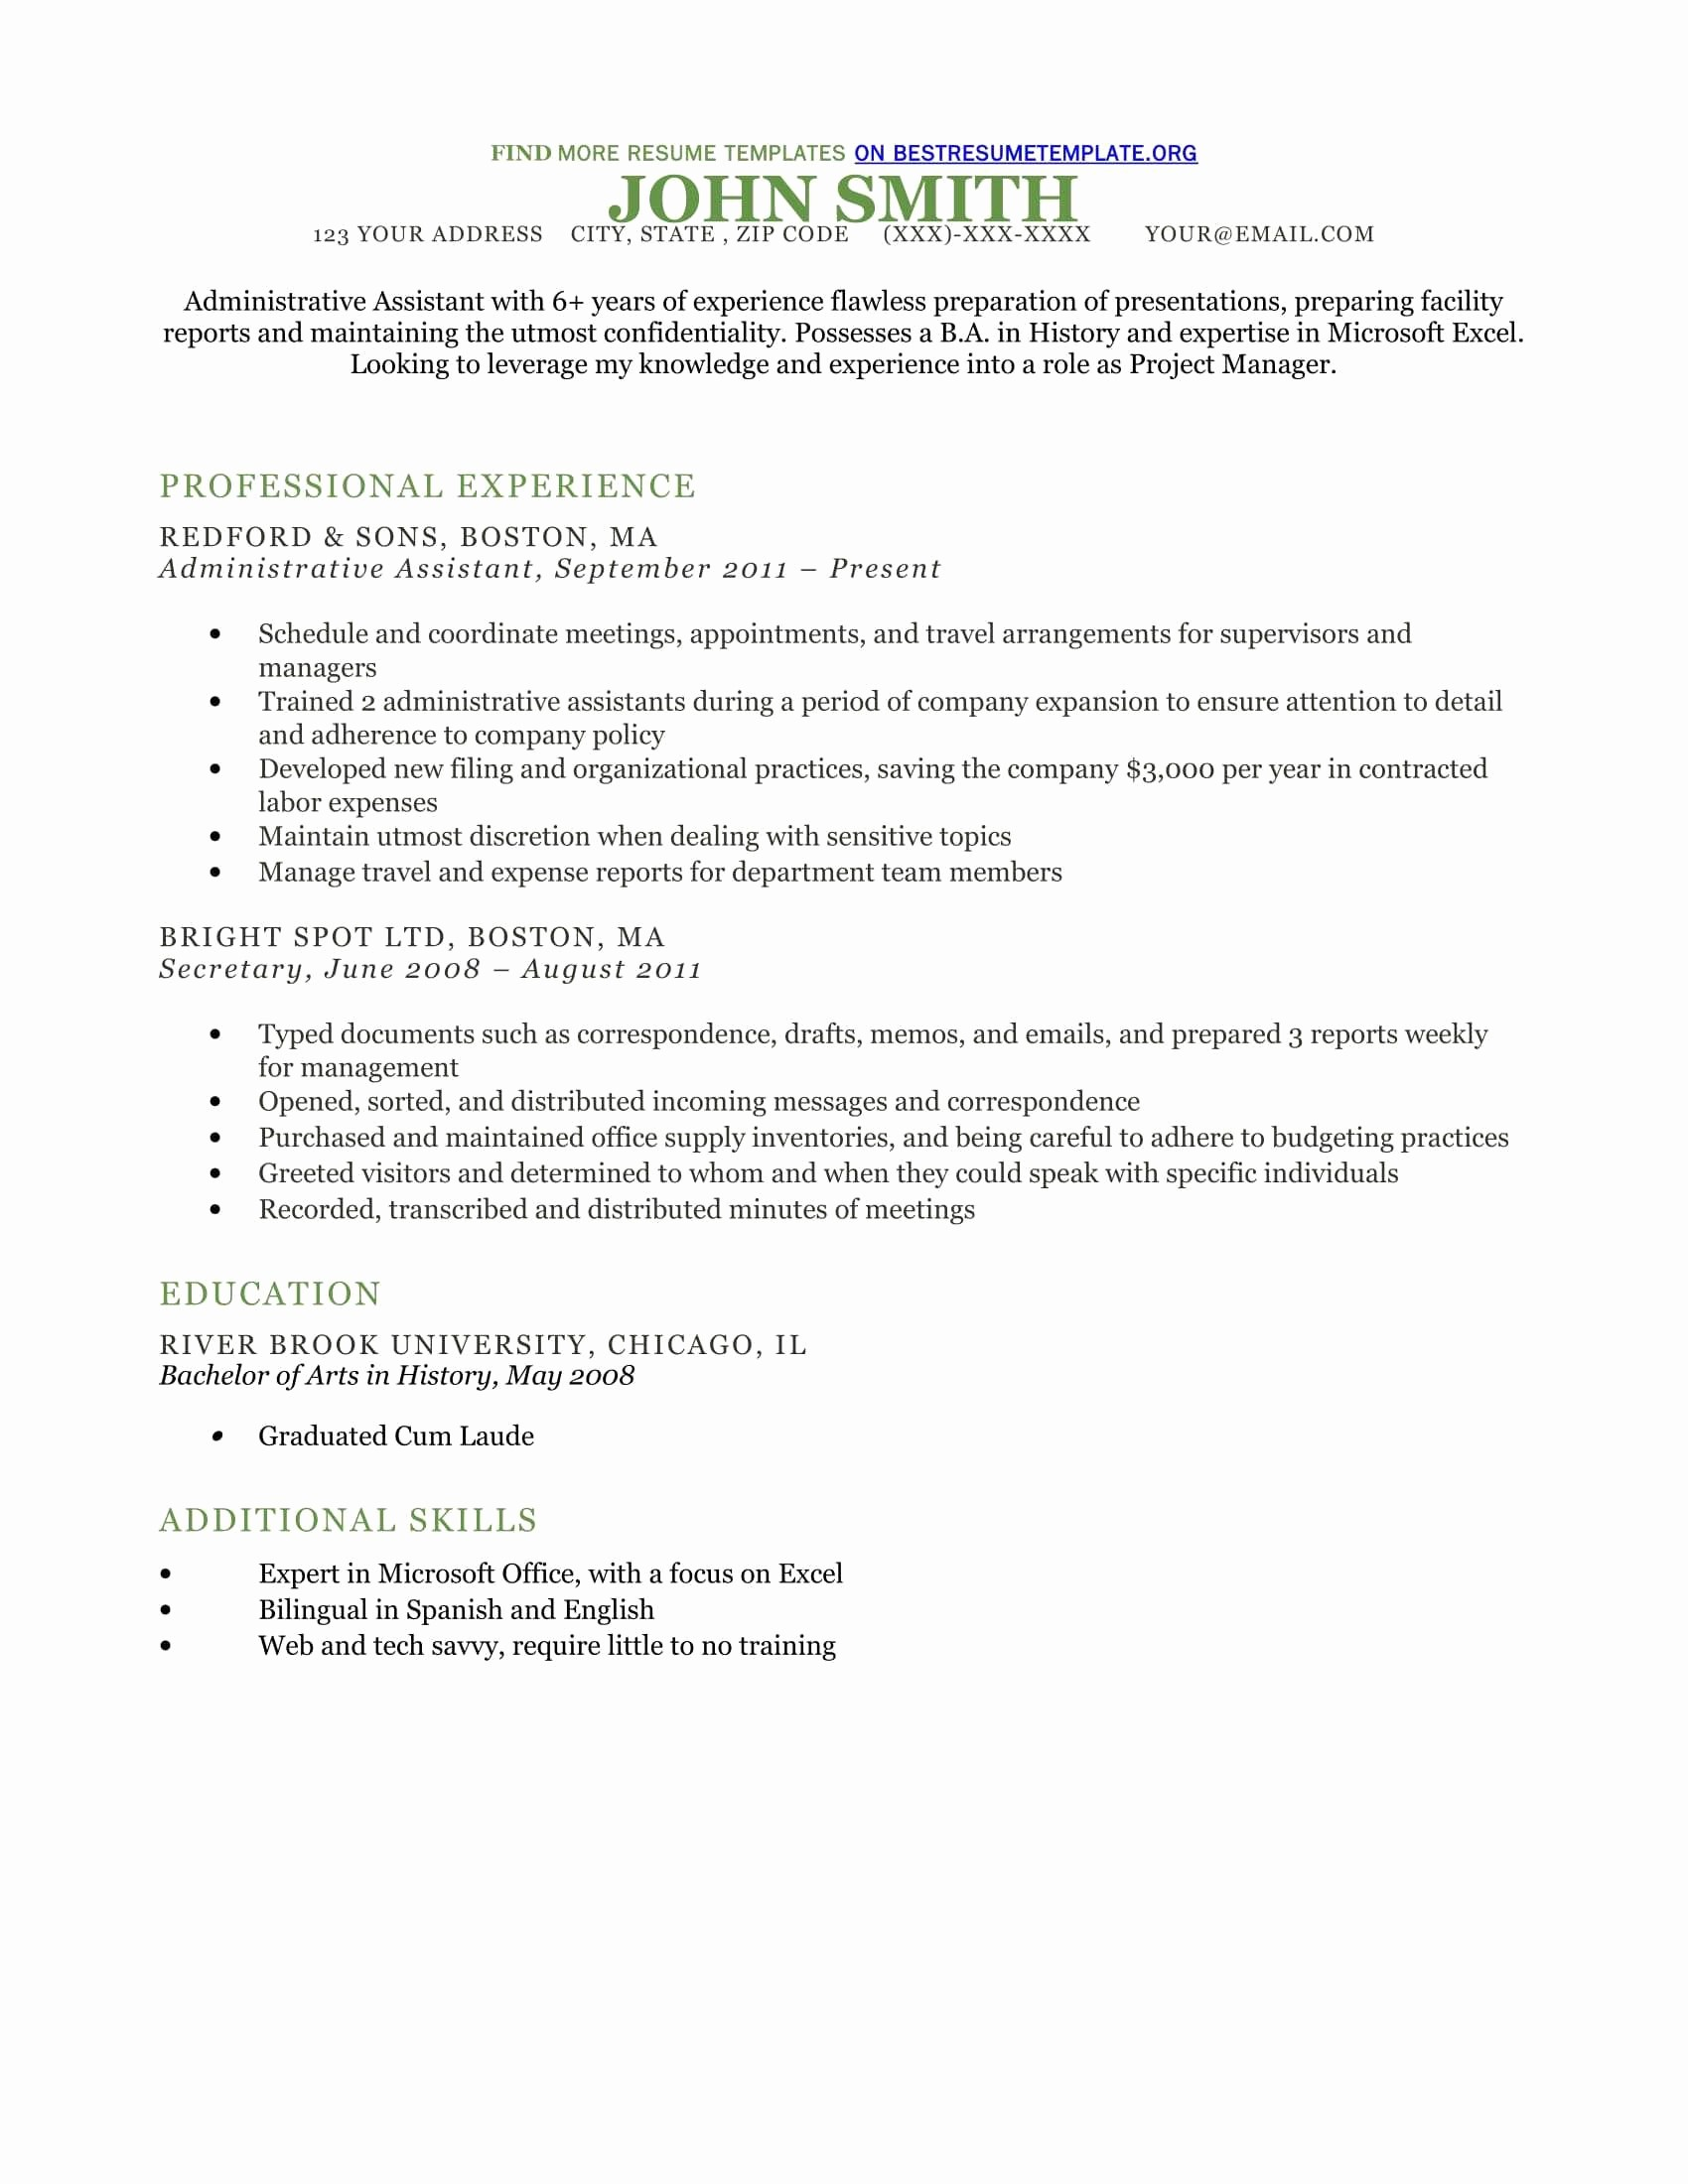 Classic Resume Template Word Download Lovely Free Classic Resume Template Classic Resume Template Word